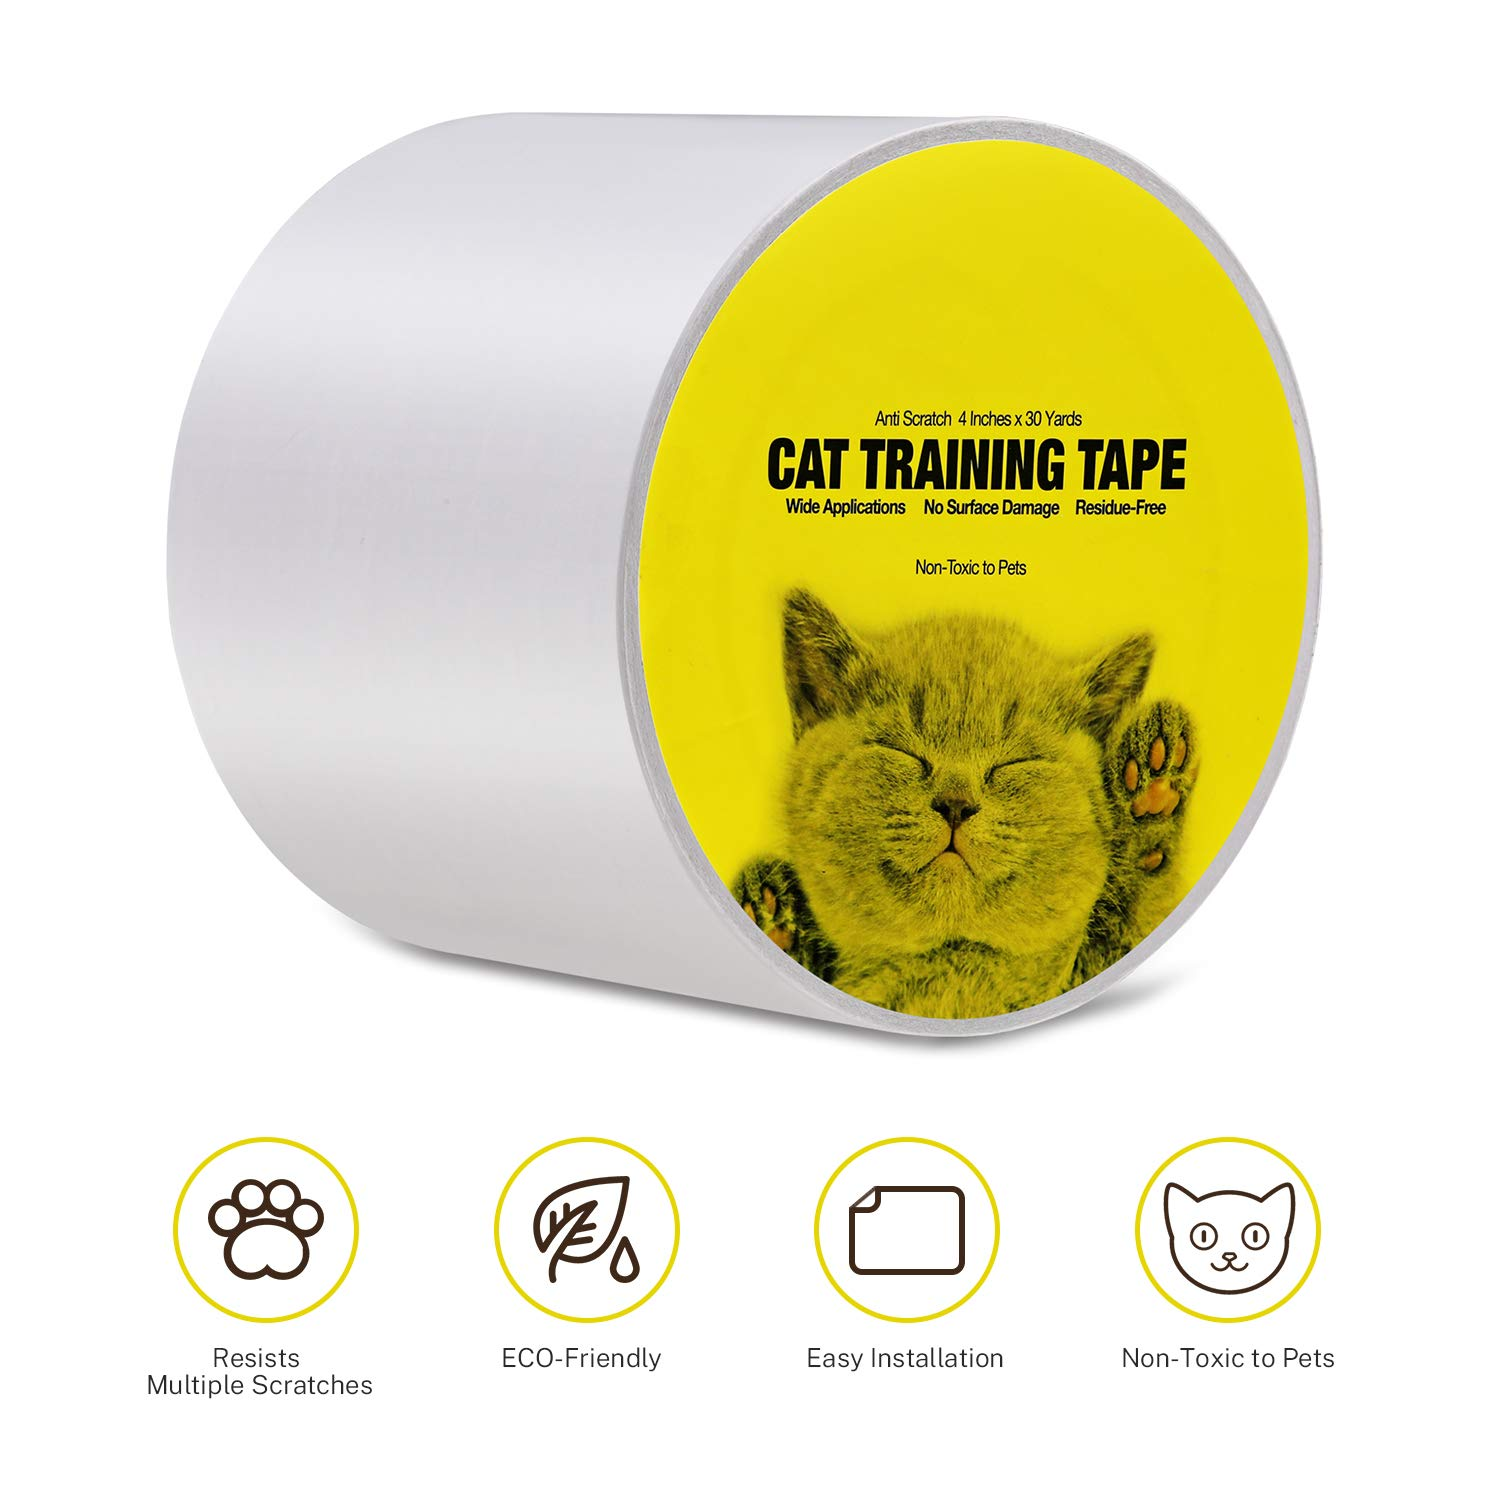 Kohree Anti Cat Scratch Tapes, 33% Wider Furniture Protector Cat Training Tape from Cats, Anti Scratch Pads for Furniture,Curtain, Carpet, 4 Inches x 30 Yards by Kohree